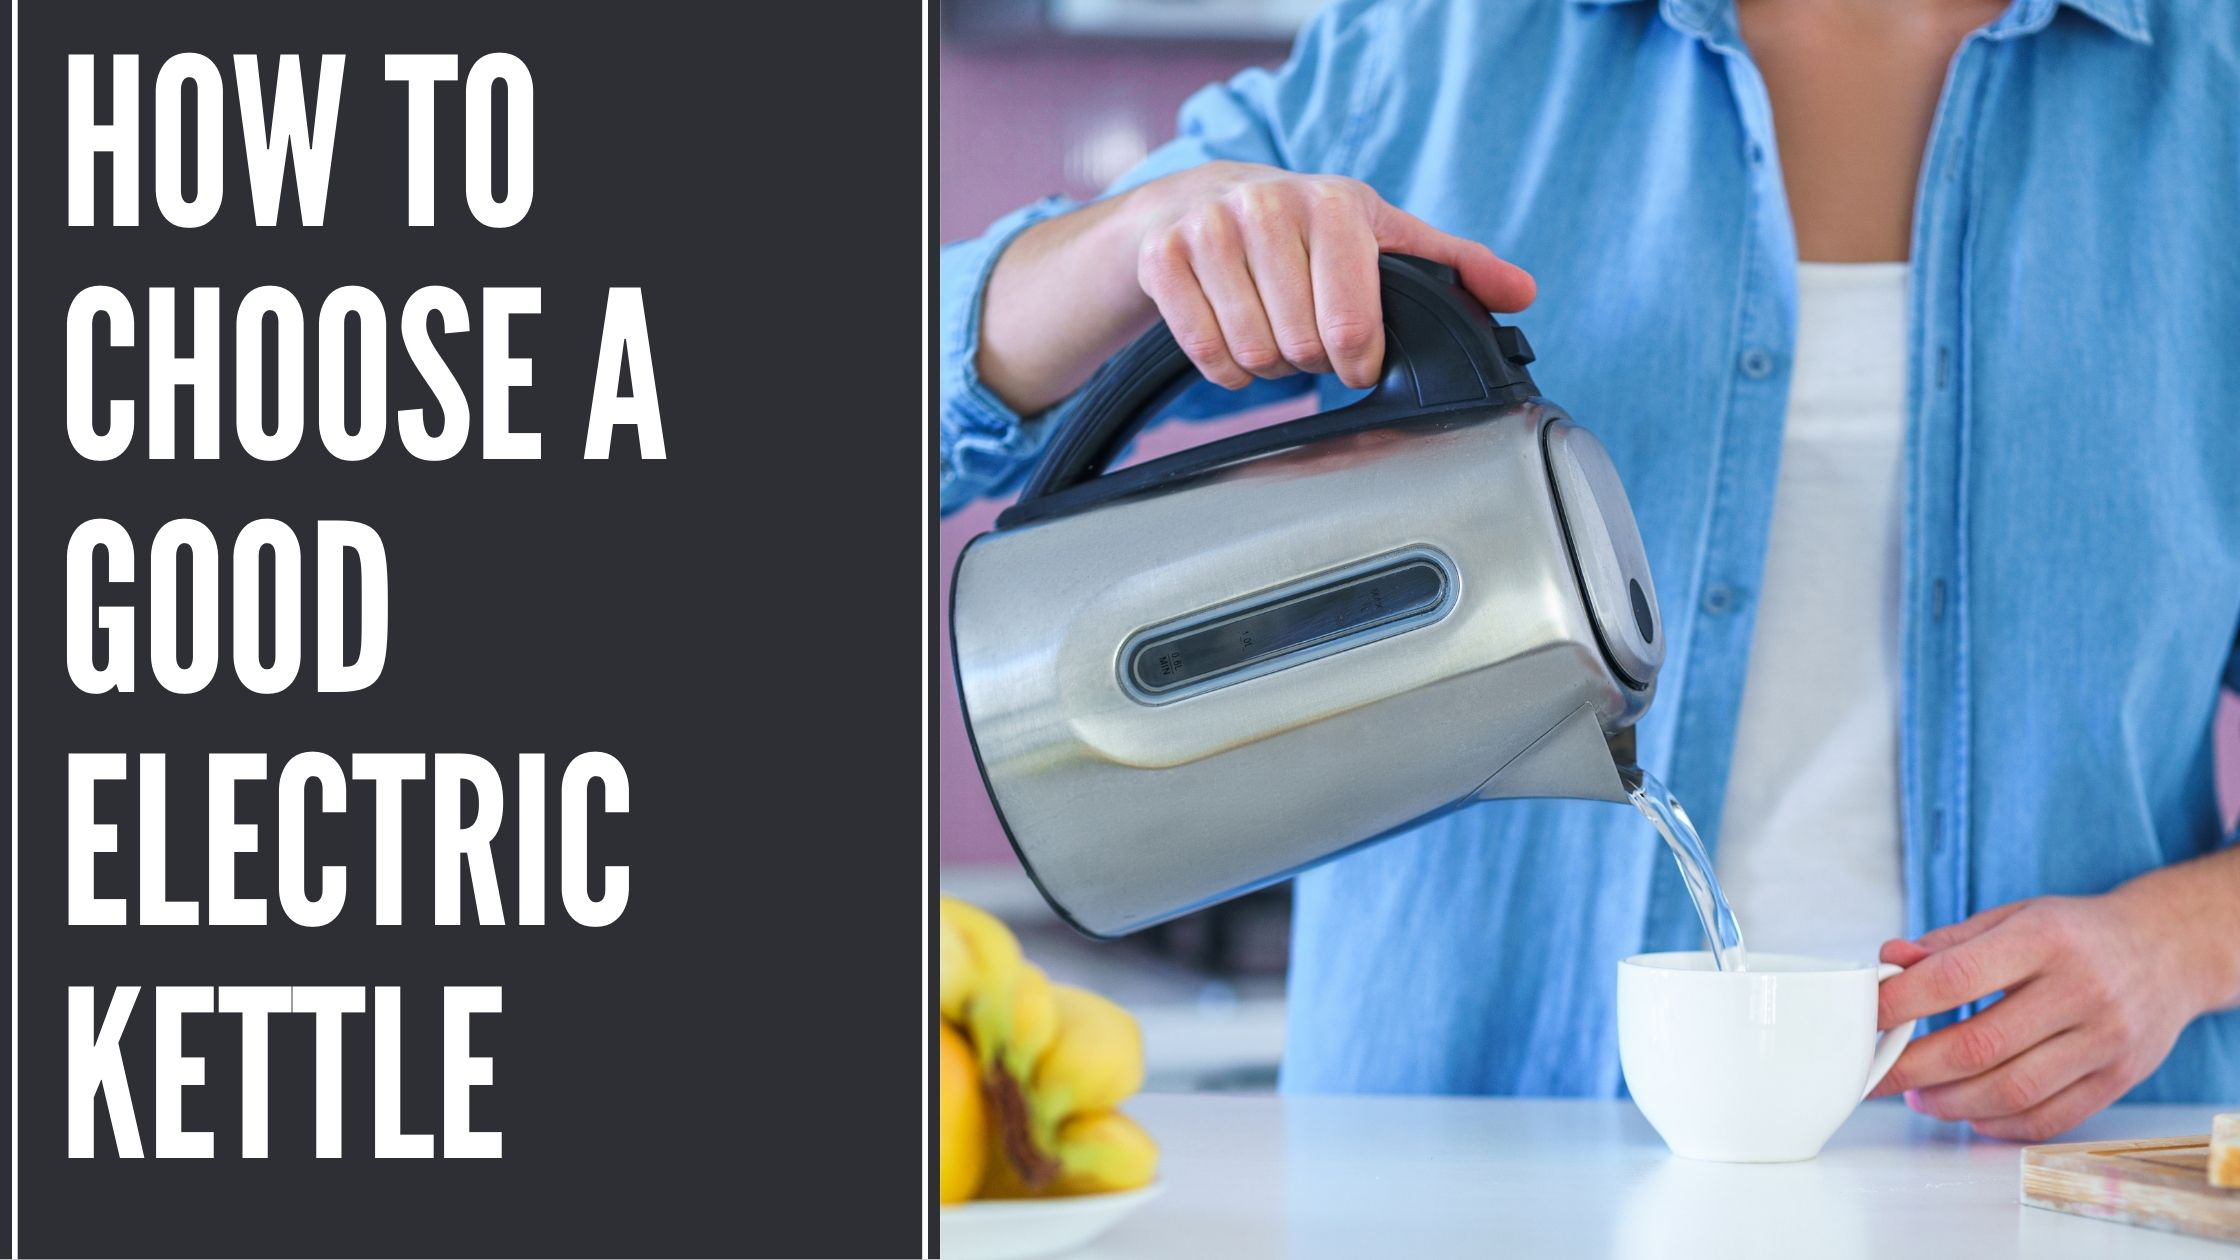 How to Choose a Good Electric Kettle for Home